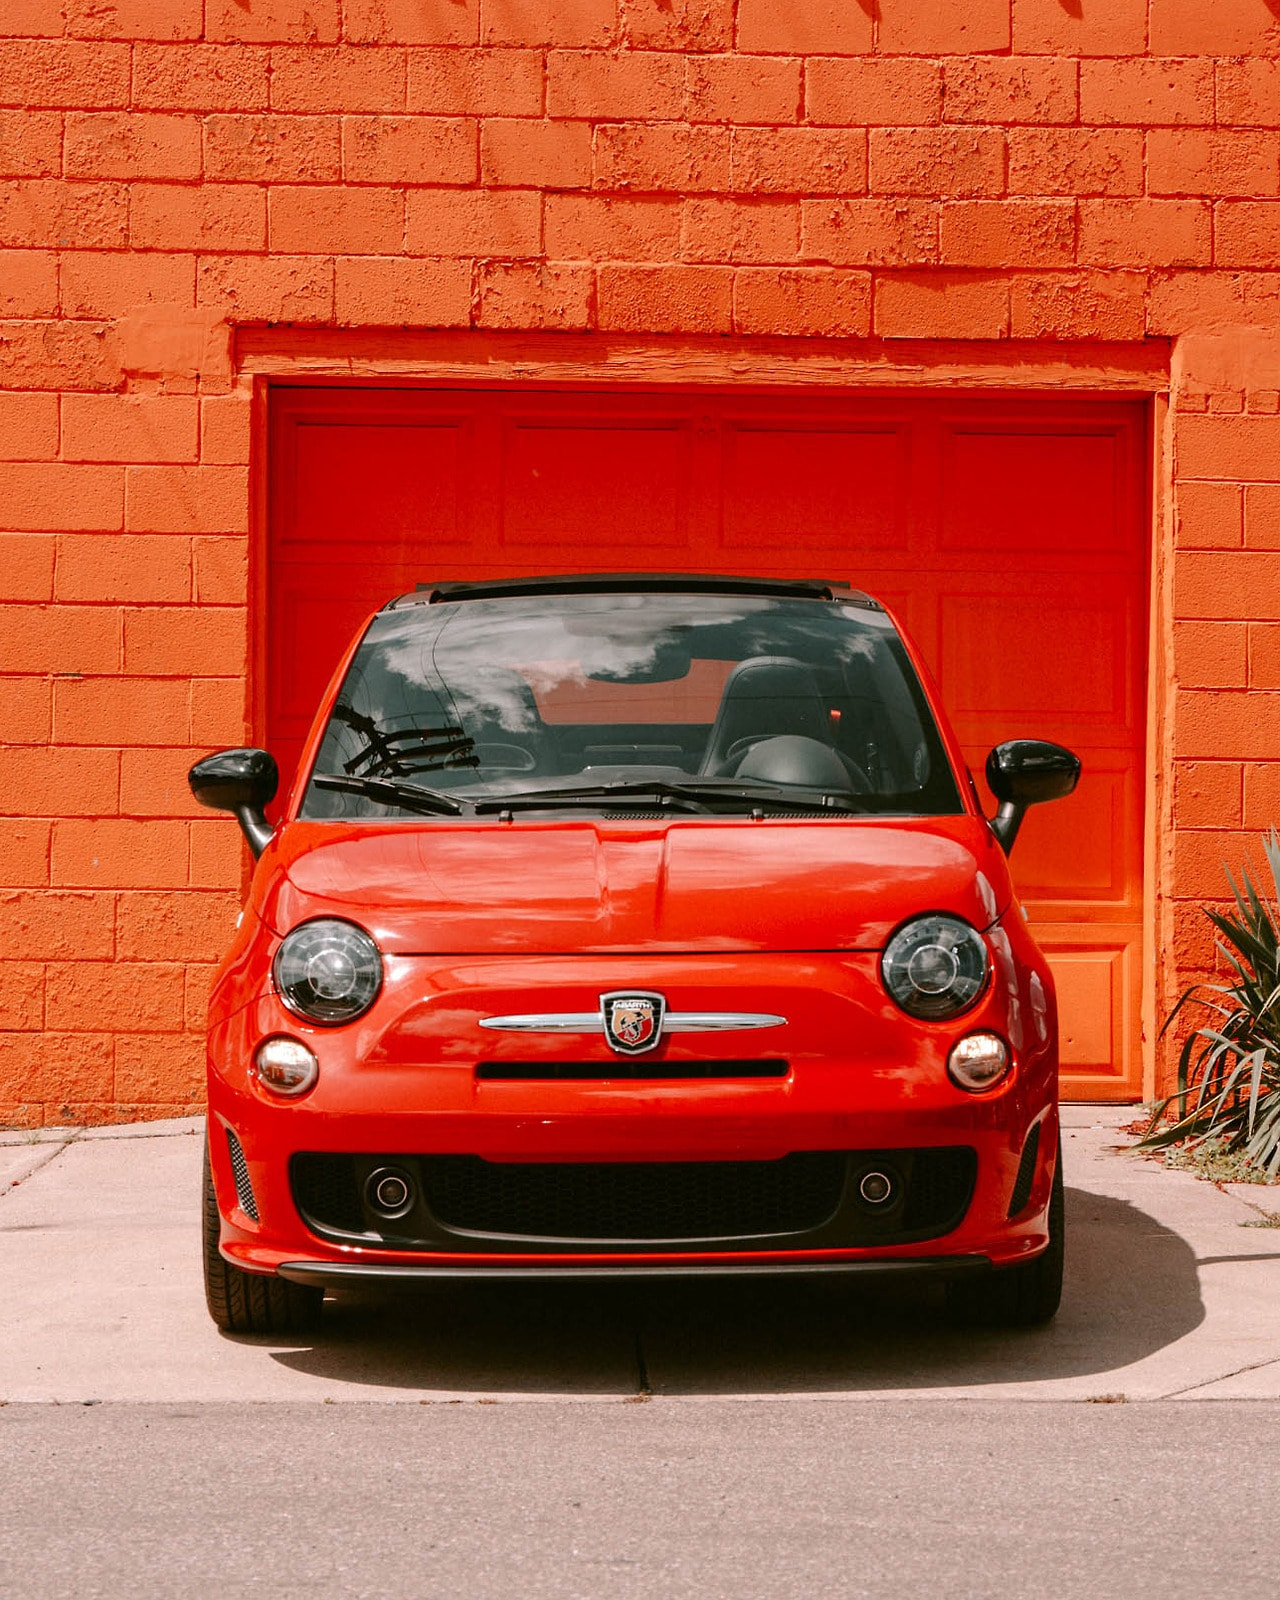 Which Color FIAT Should You Take to School?